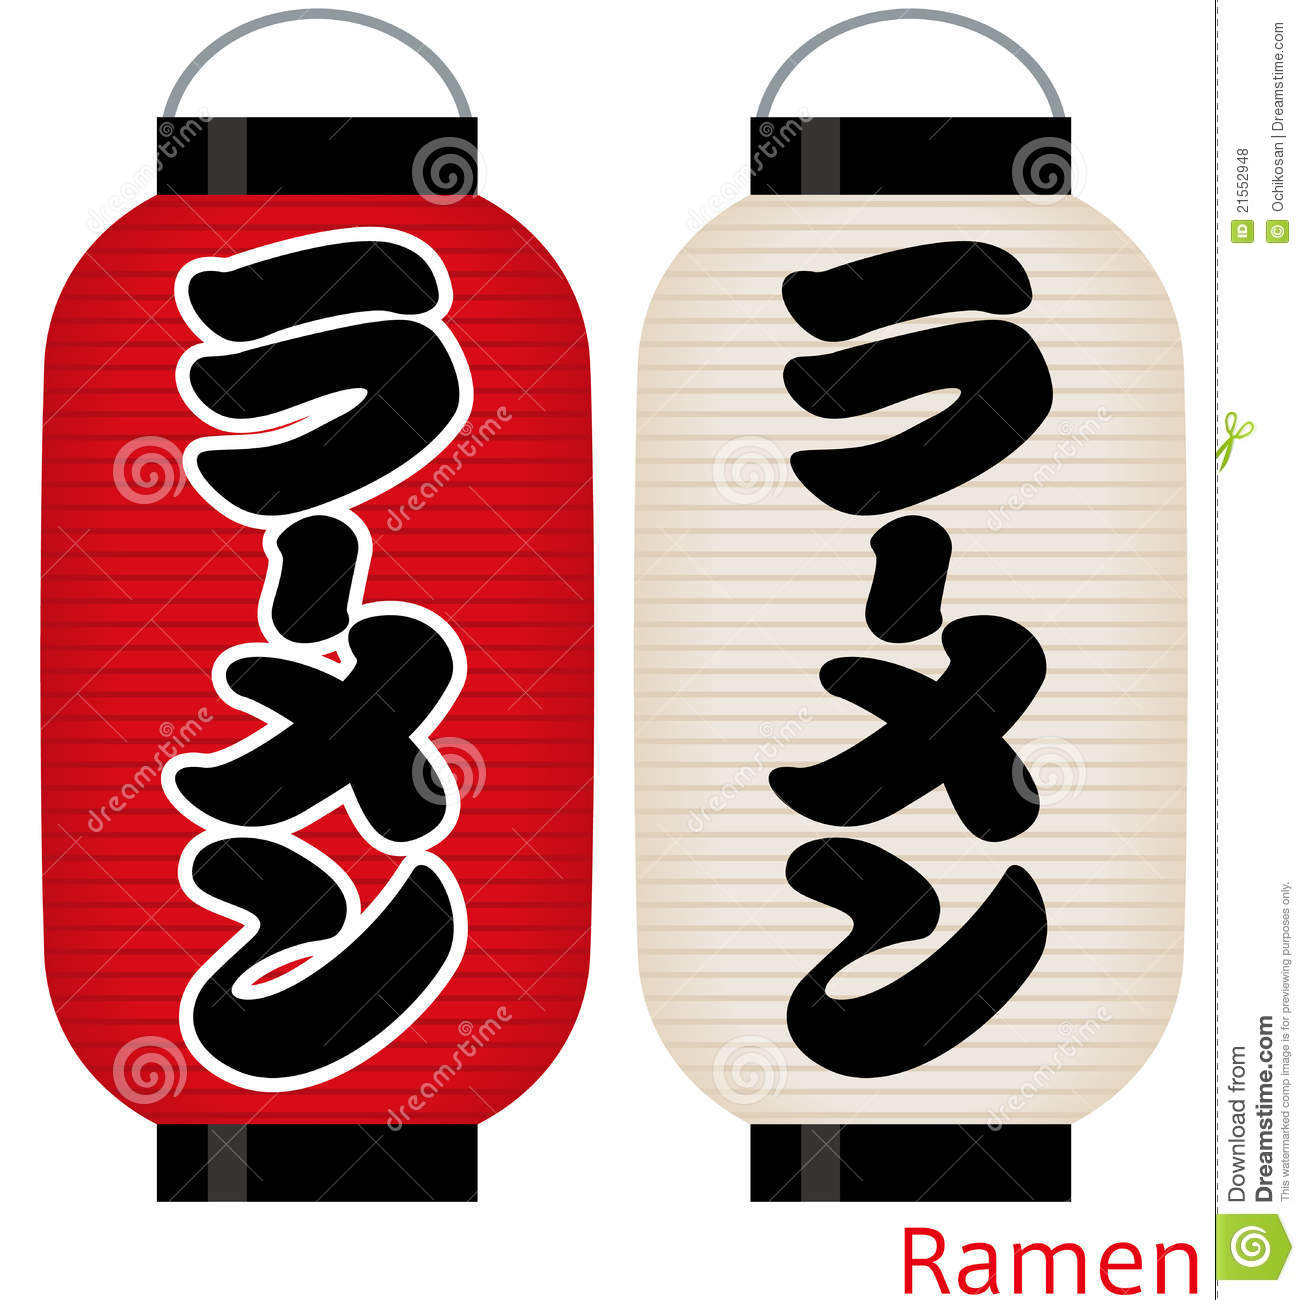 Japanese Paper Lantern Ramen Shop Signs Royalty Free Stock